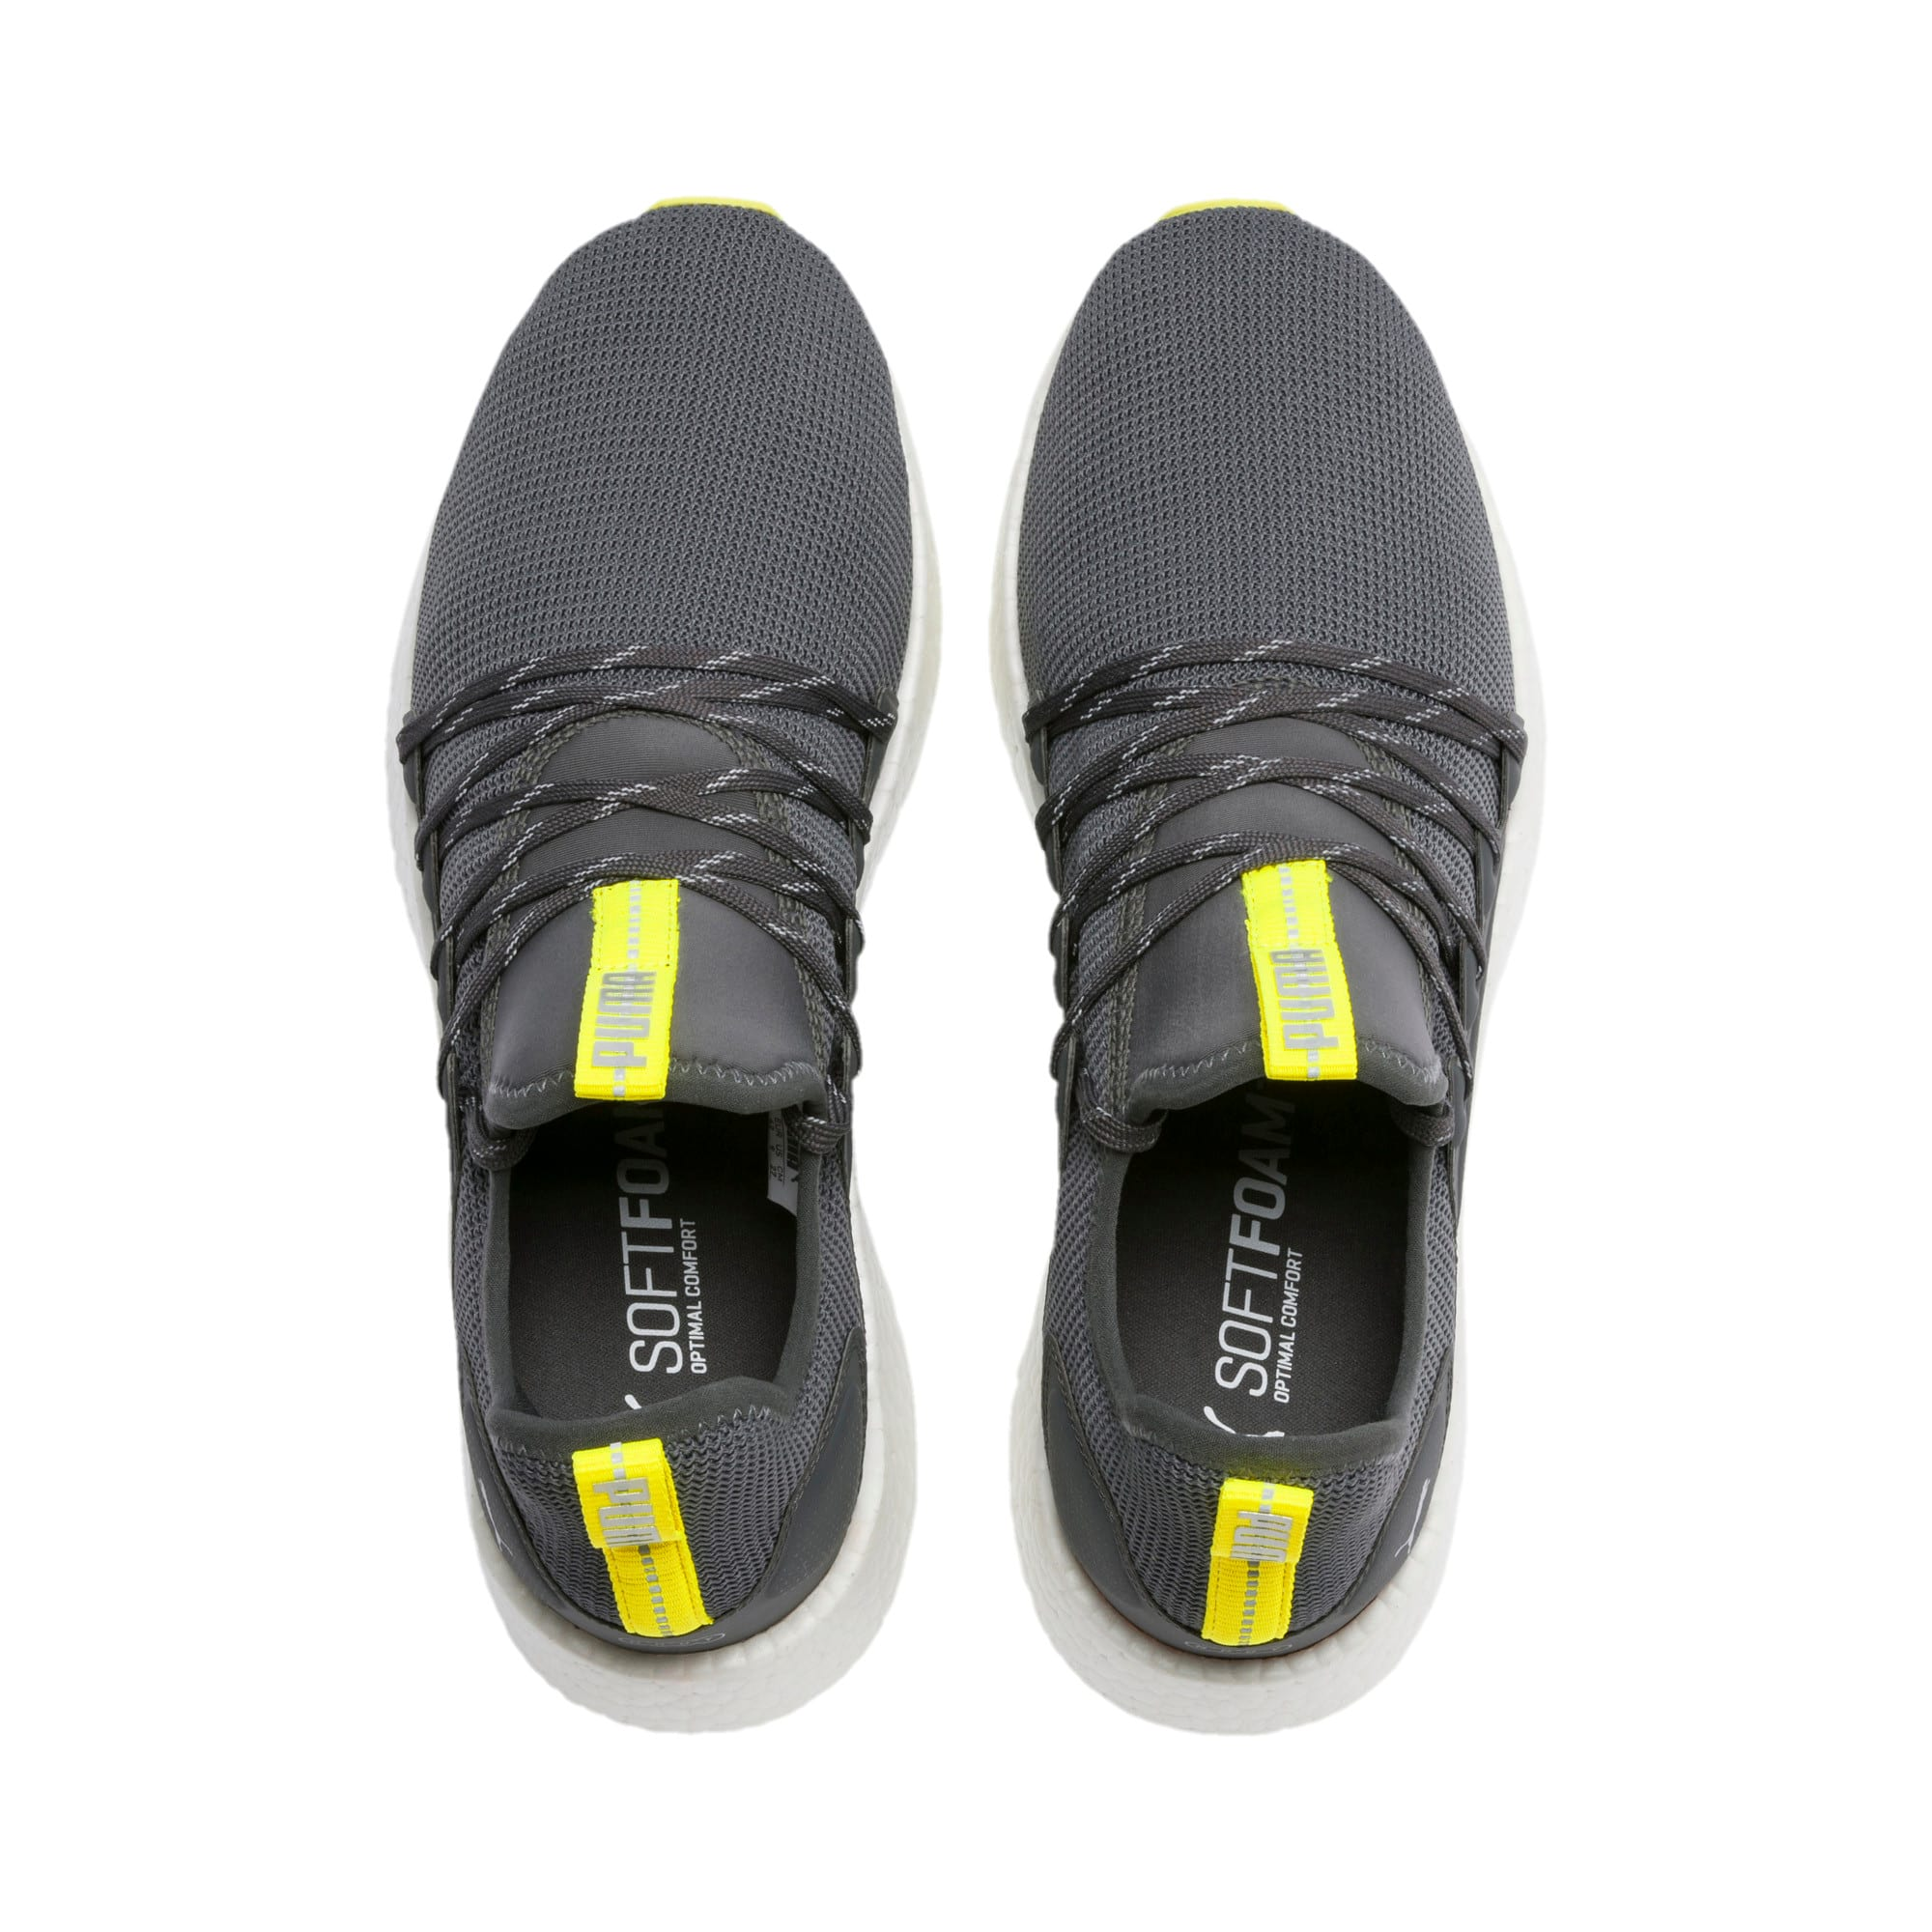 Thumbnail 7 of NRGY Neko Lights hardloopschoenen voor heren, CASTLEROCK-Yellow Alert, medium